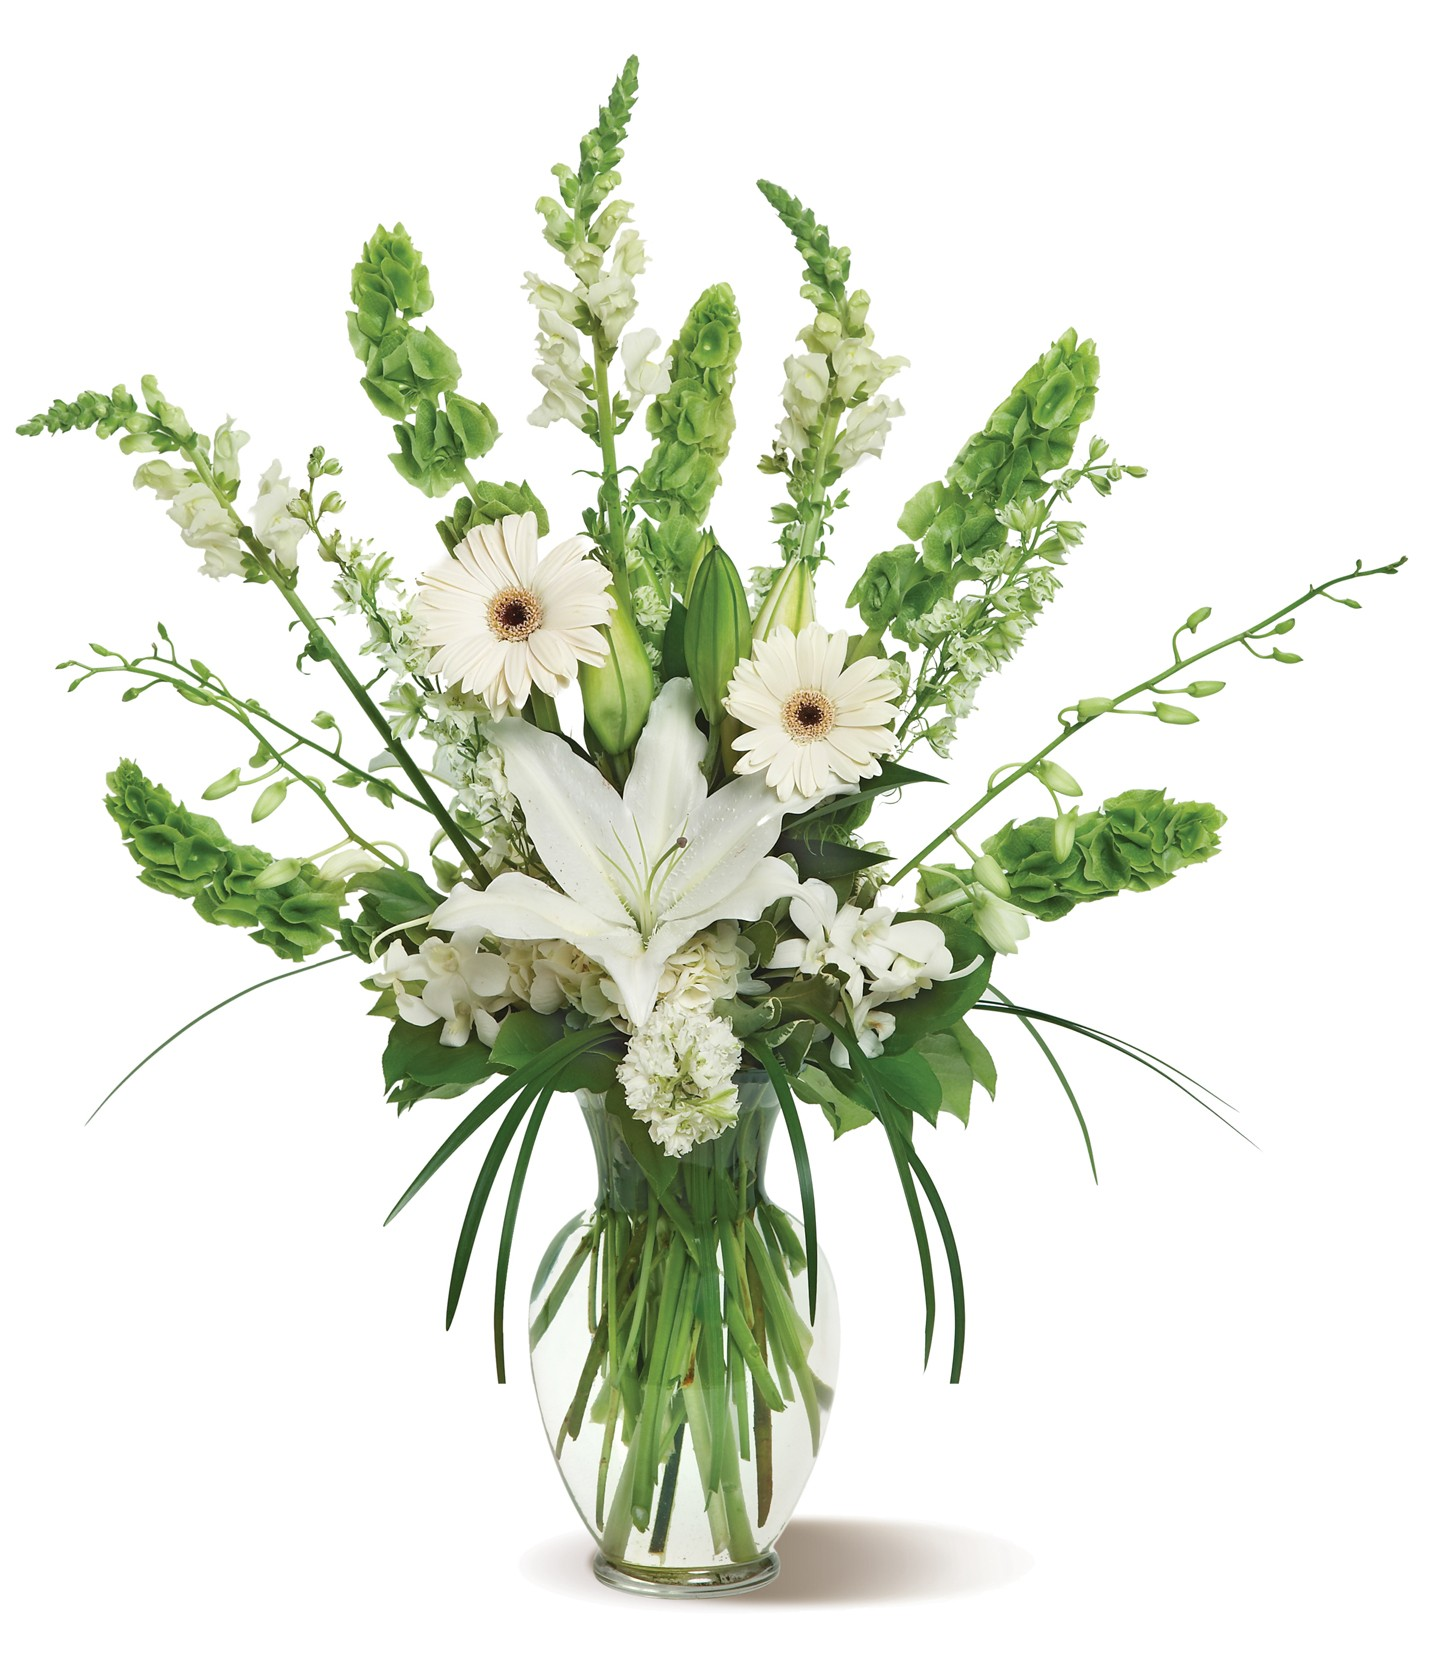 Alexs flowers funeral vase arrangements izmirmasajfo Image collections